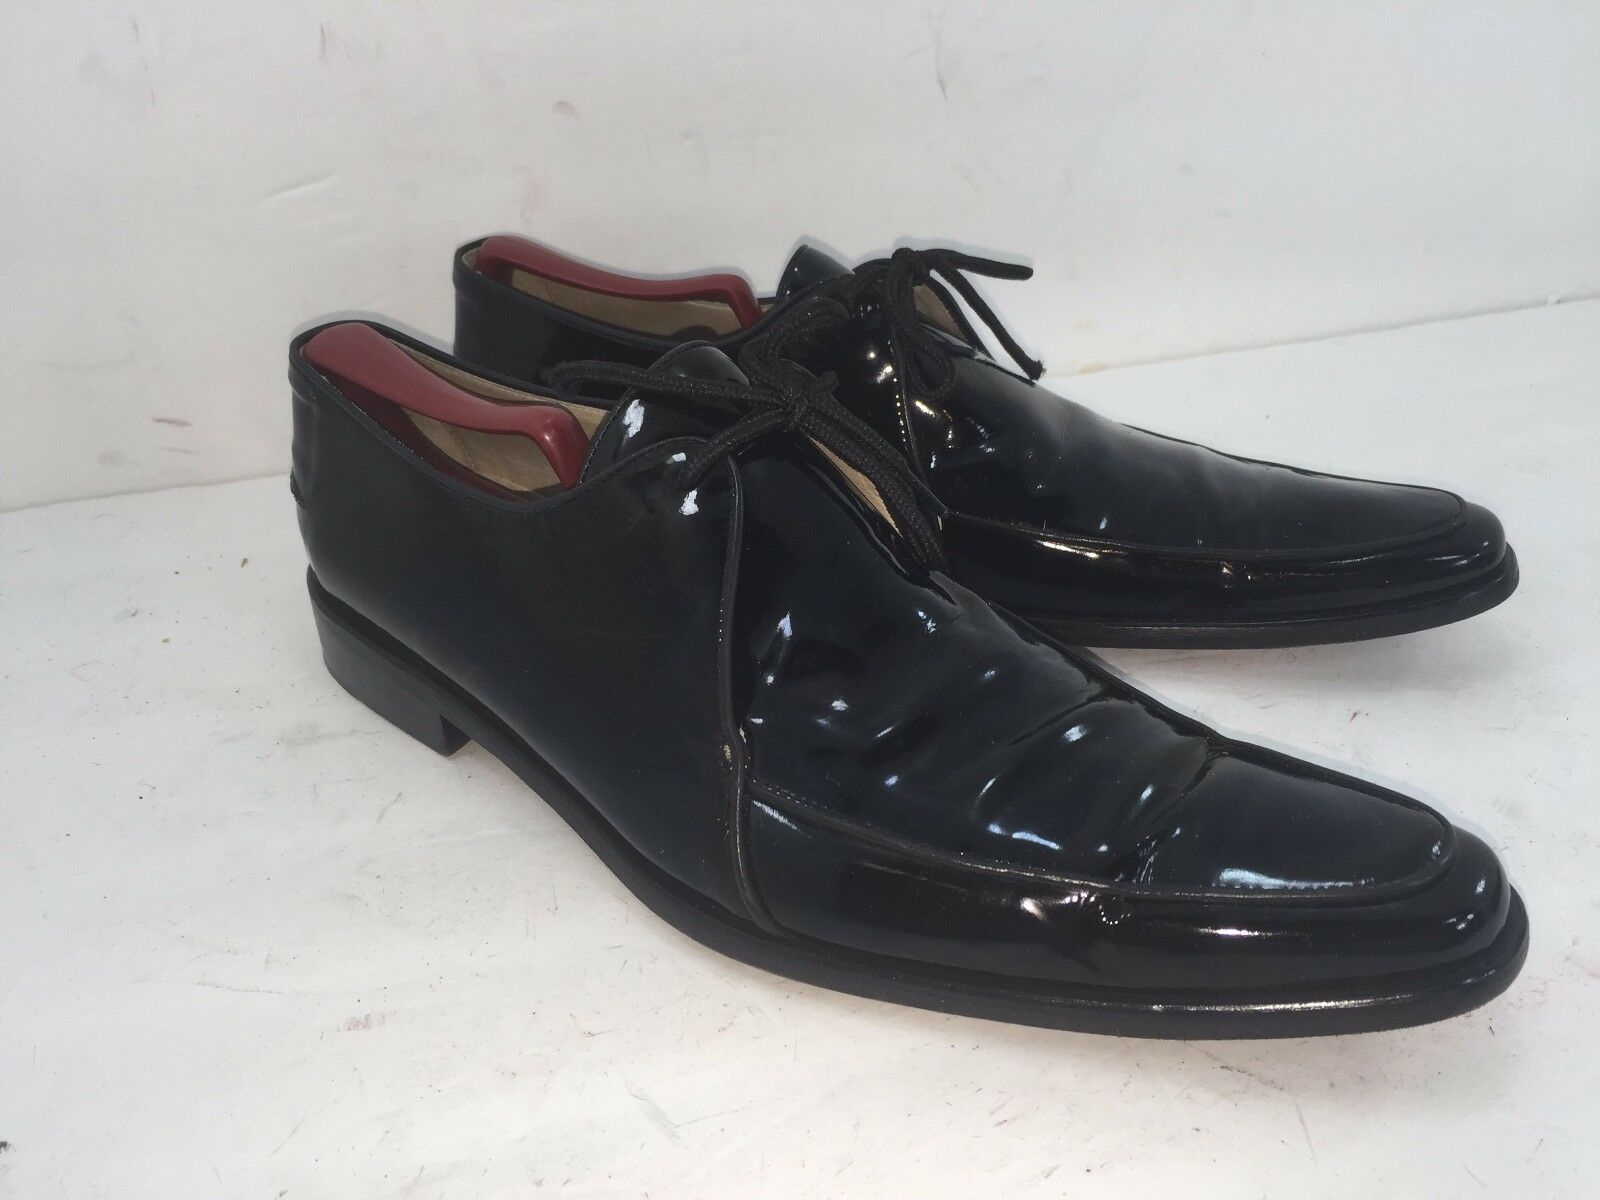 OLIVER SWEENEY OSCAR SZ 10 SHOES PATENT LEATHER SIZE SIZE SIZE 10 IN GREAT CONDITION 852de4